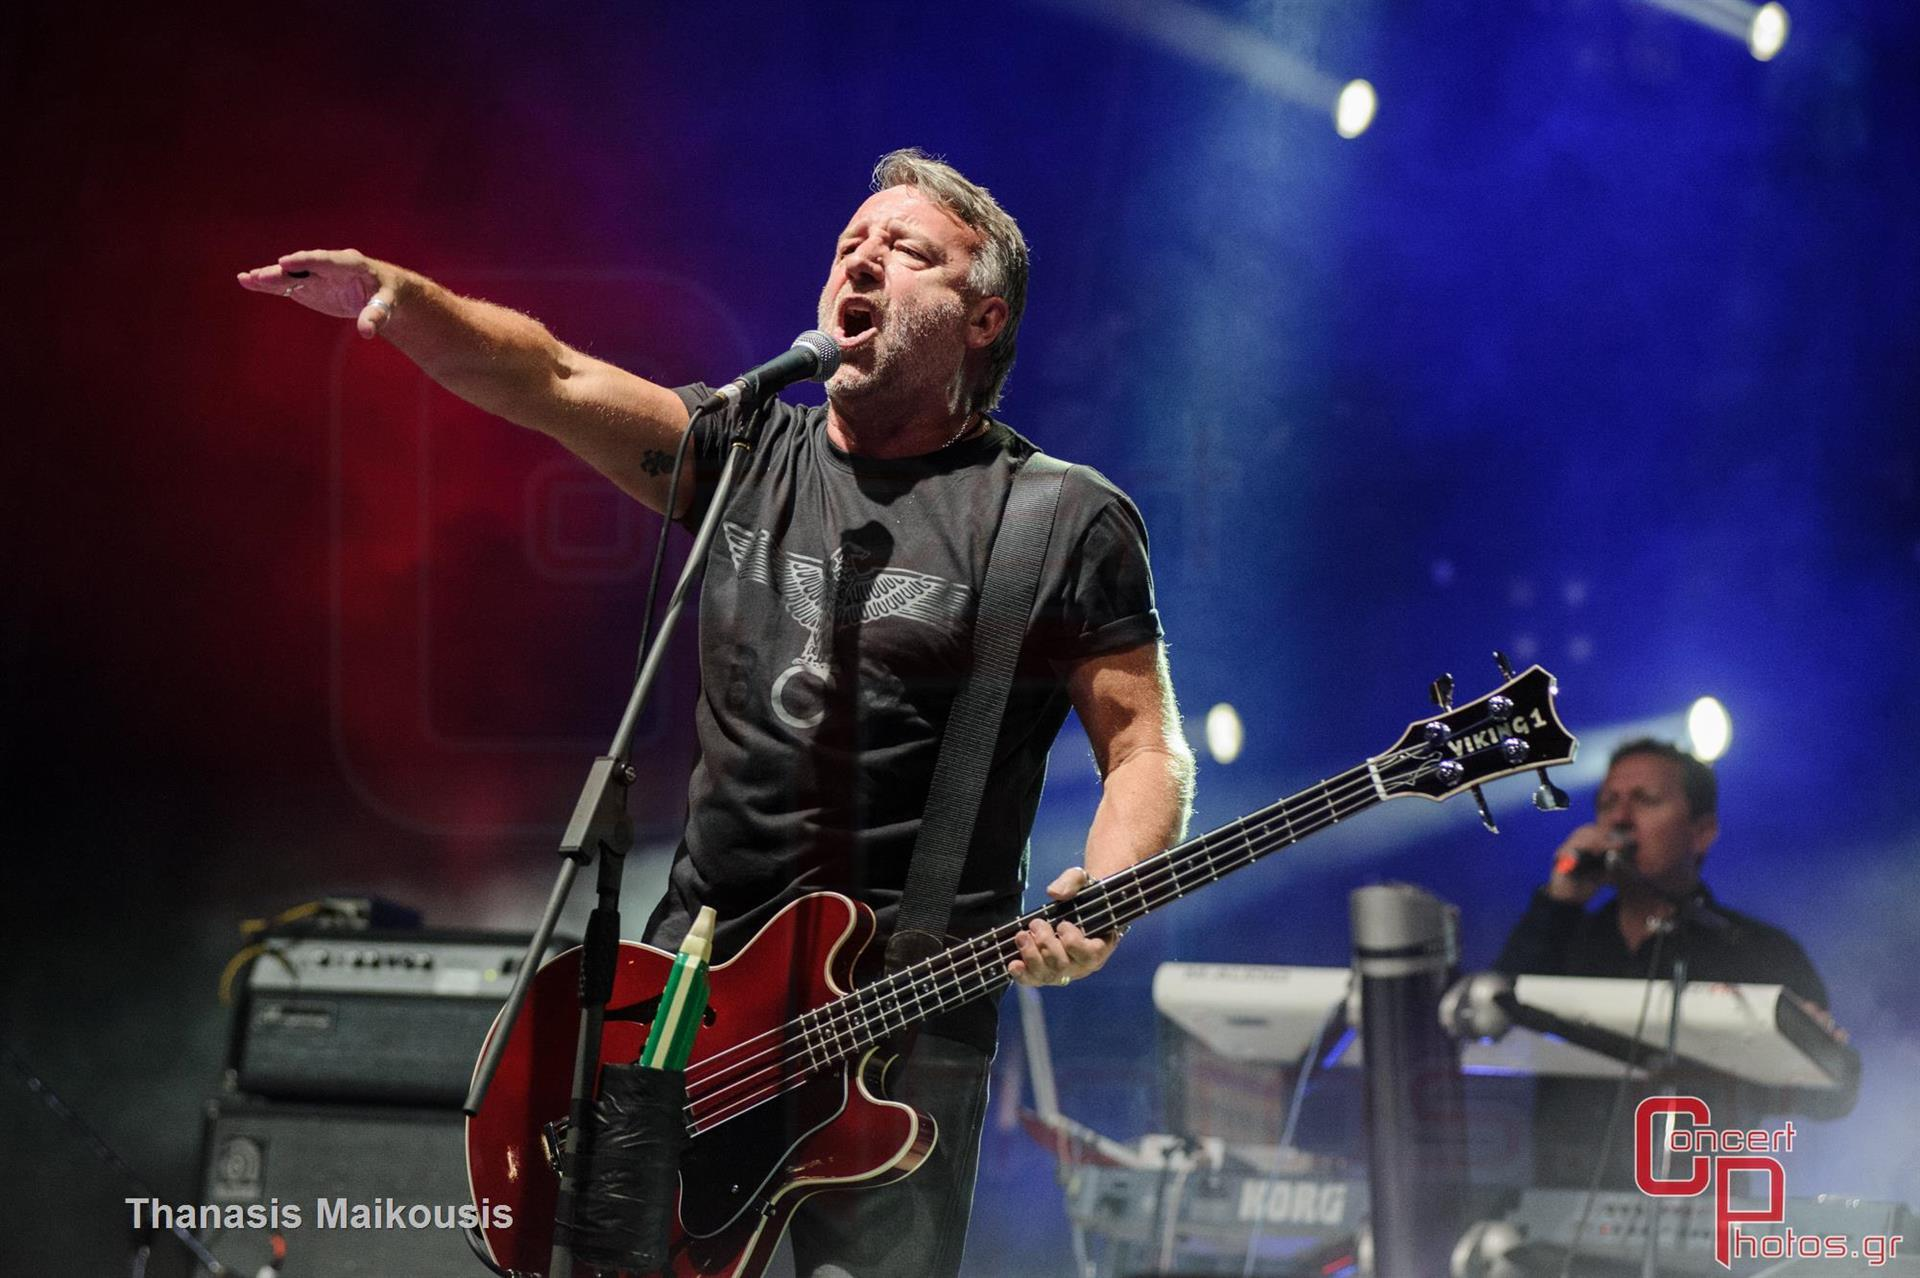 Peter Hook & The Light -Peter Hook & The Light Ejekt 2013 photographer: Thanasis Maikousis - concertphotos_-9383